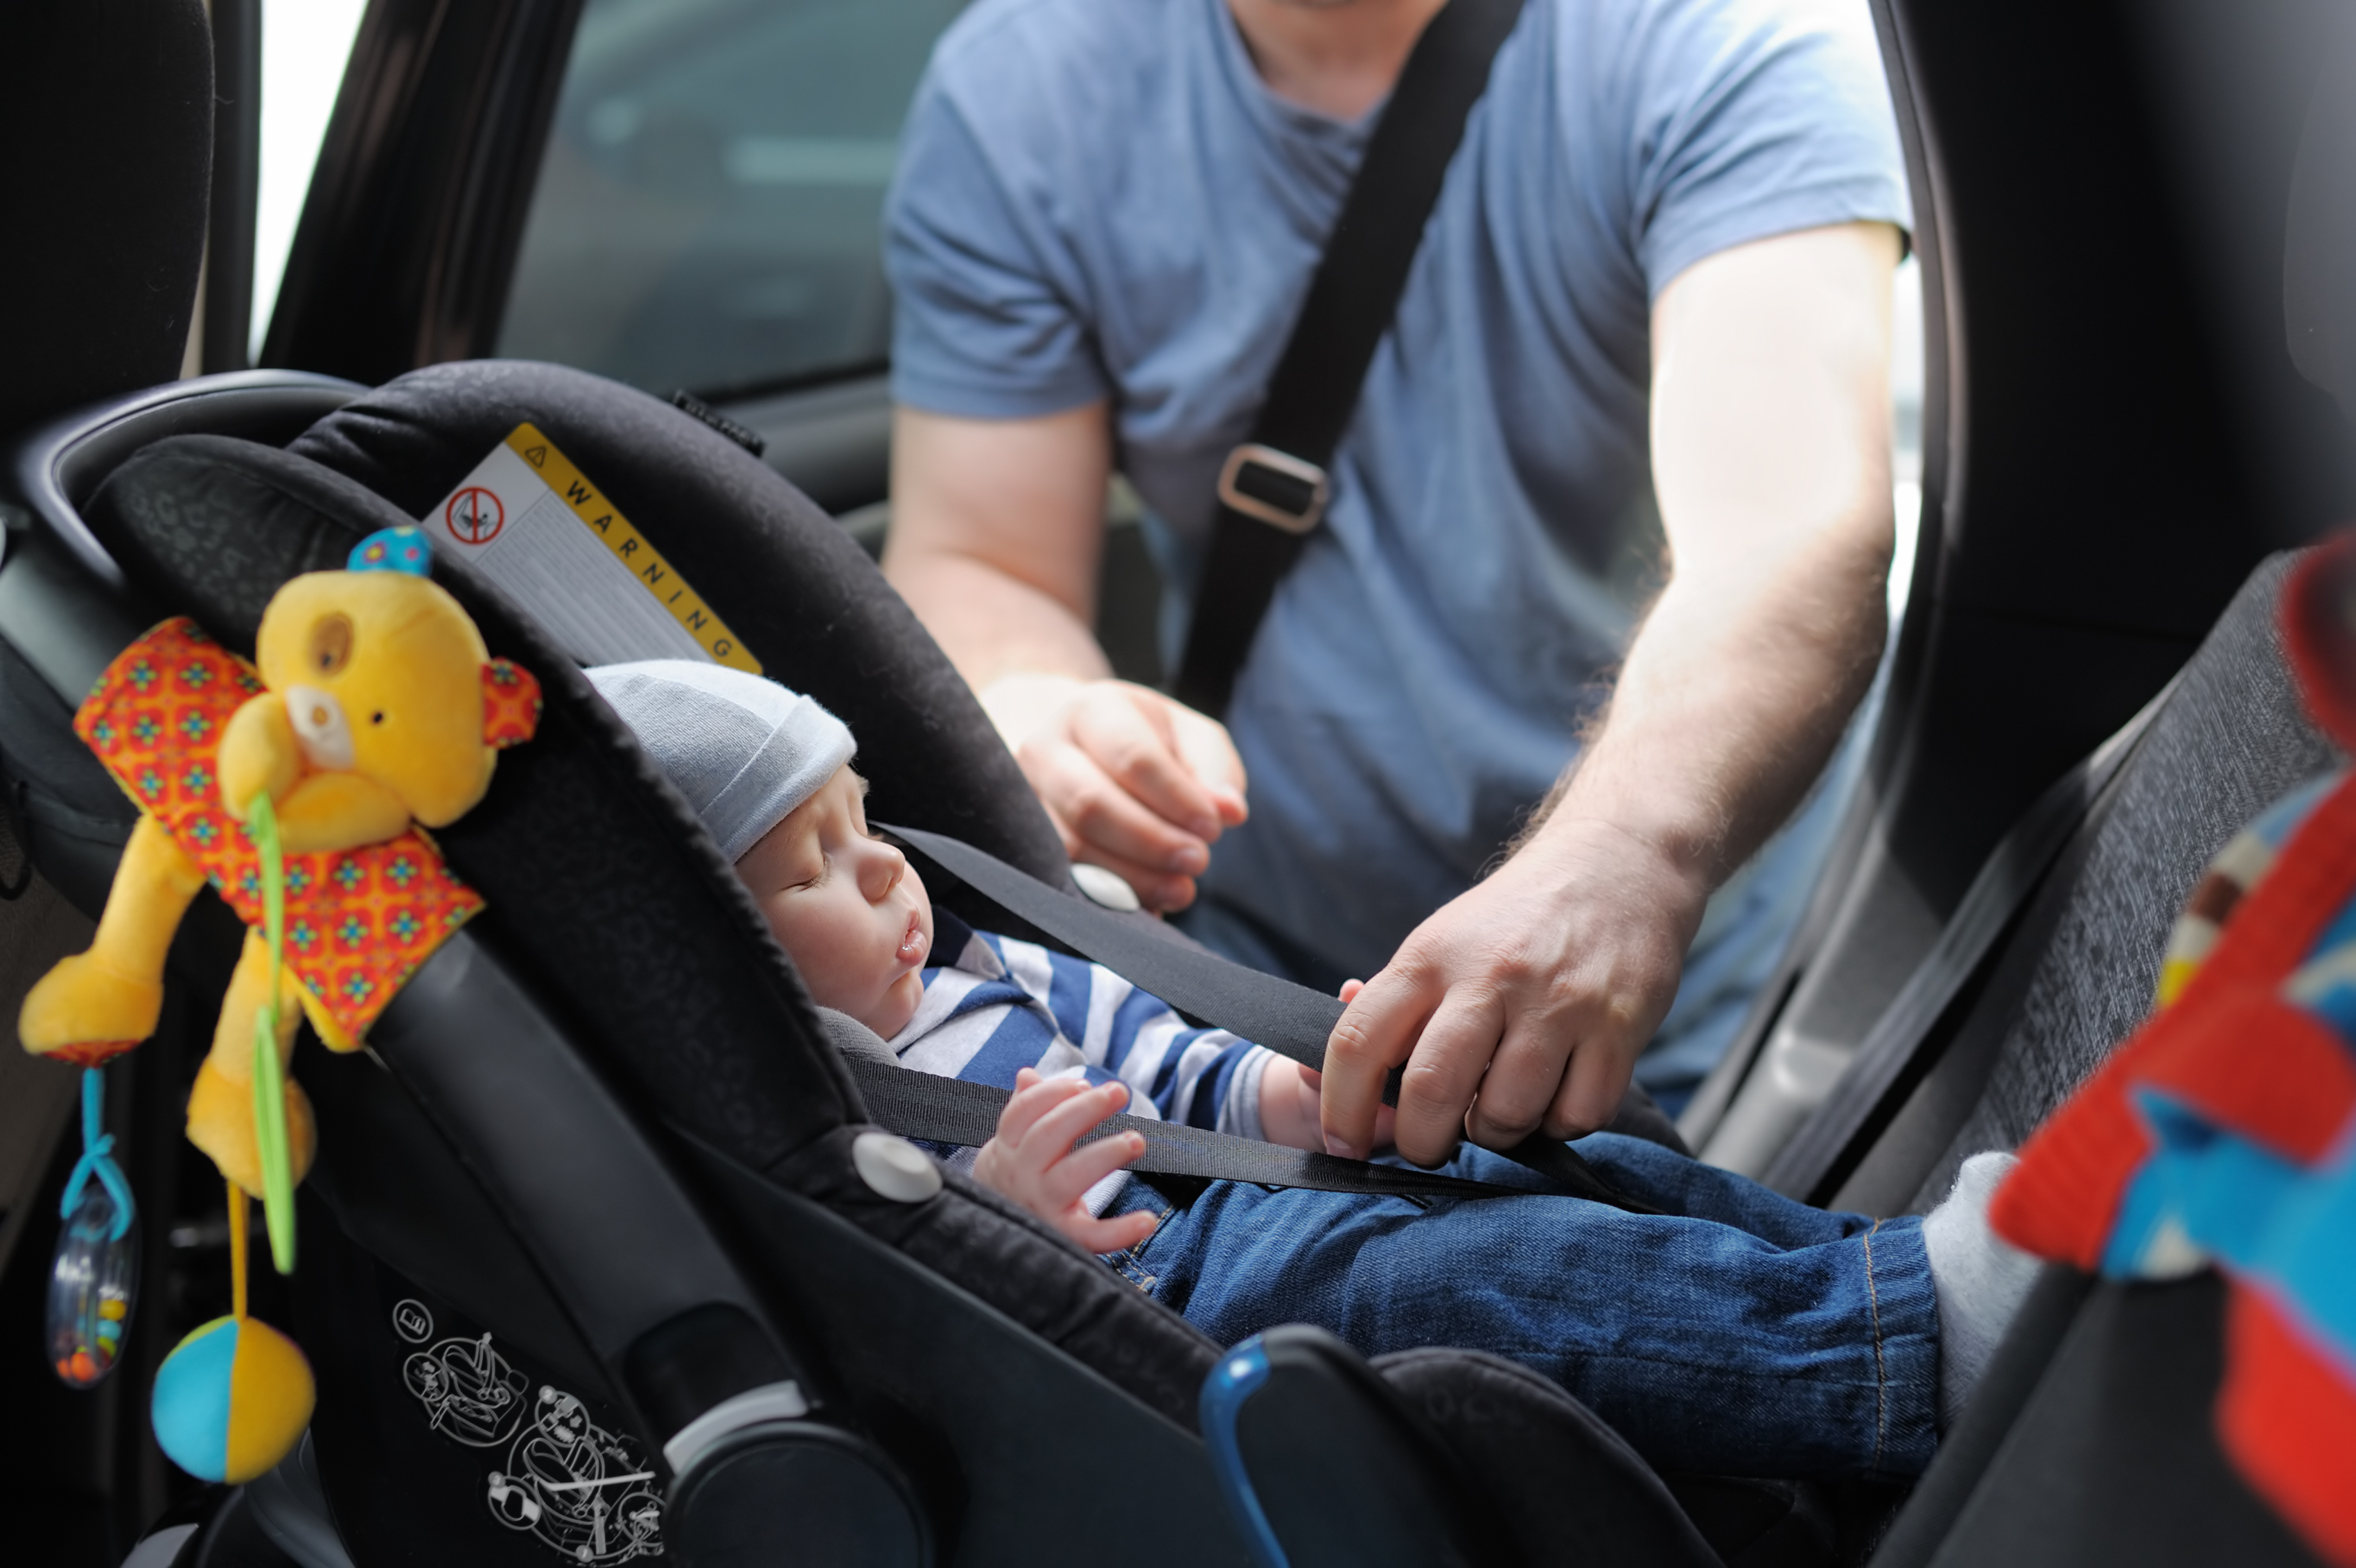 Tips for Safely Installing a Child Car Seat